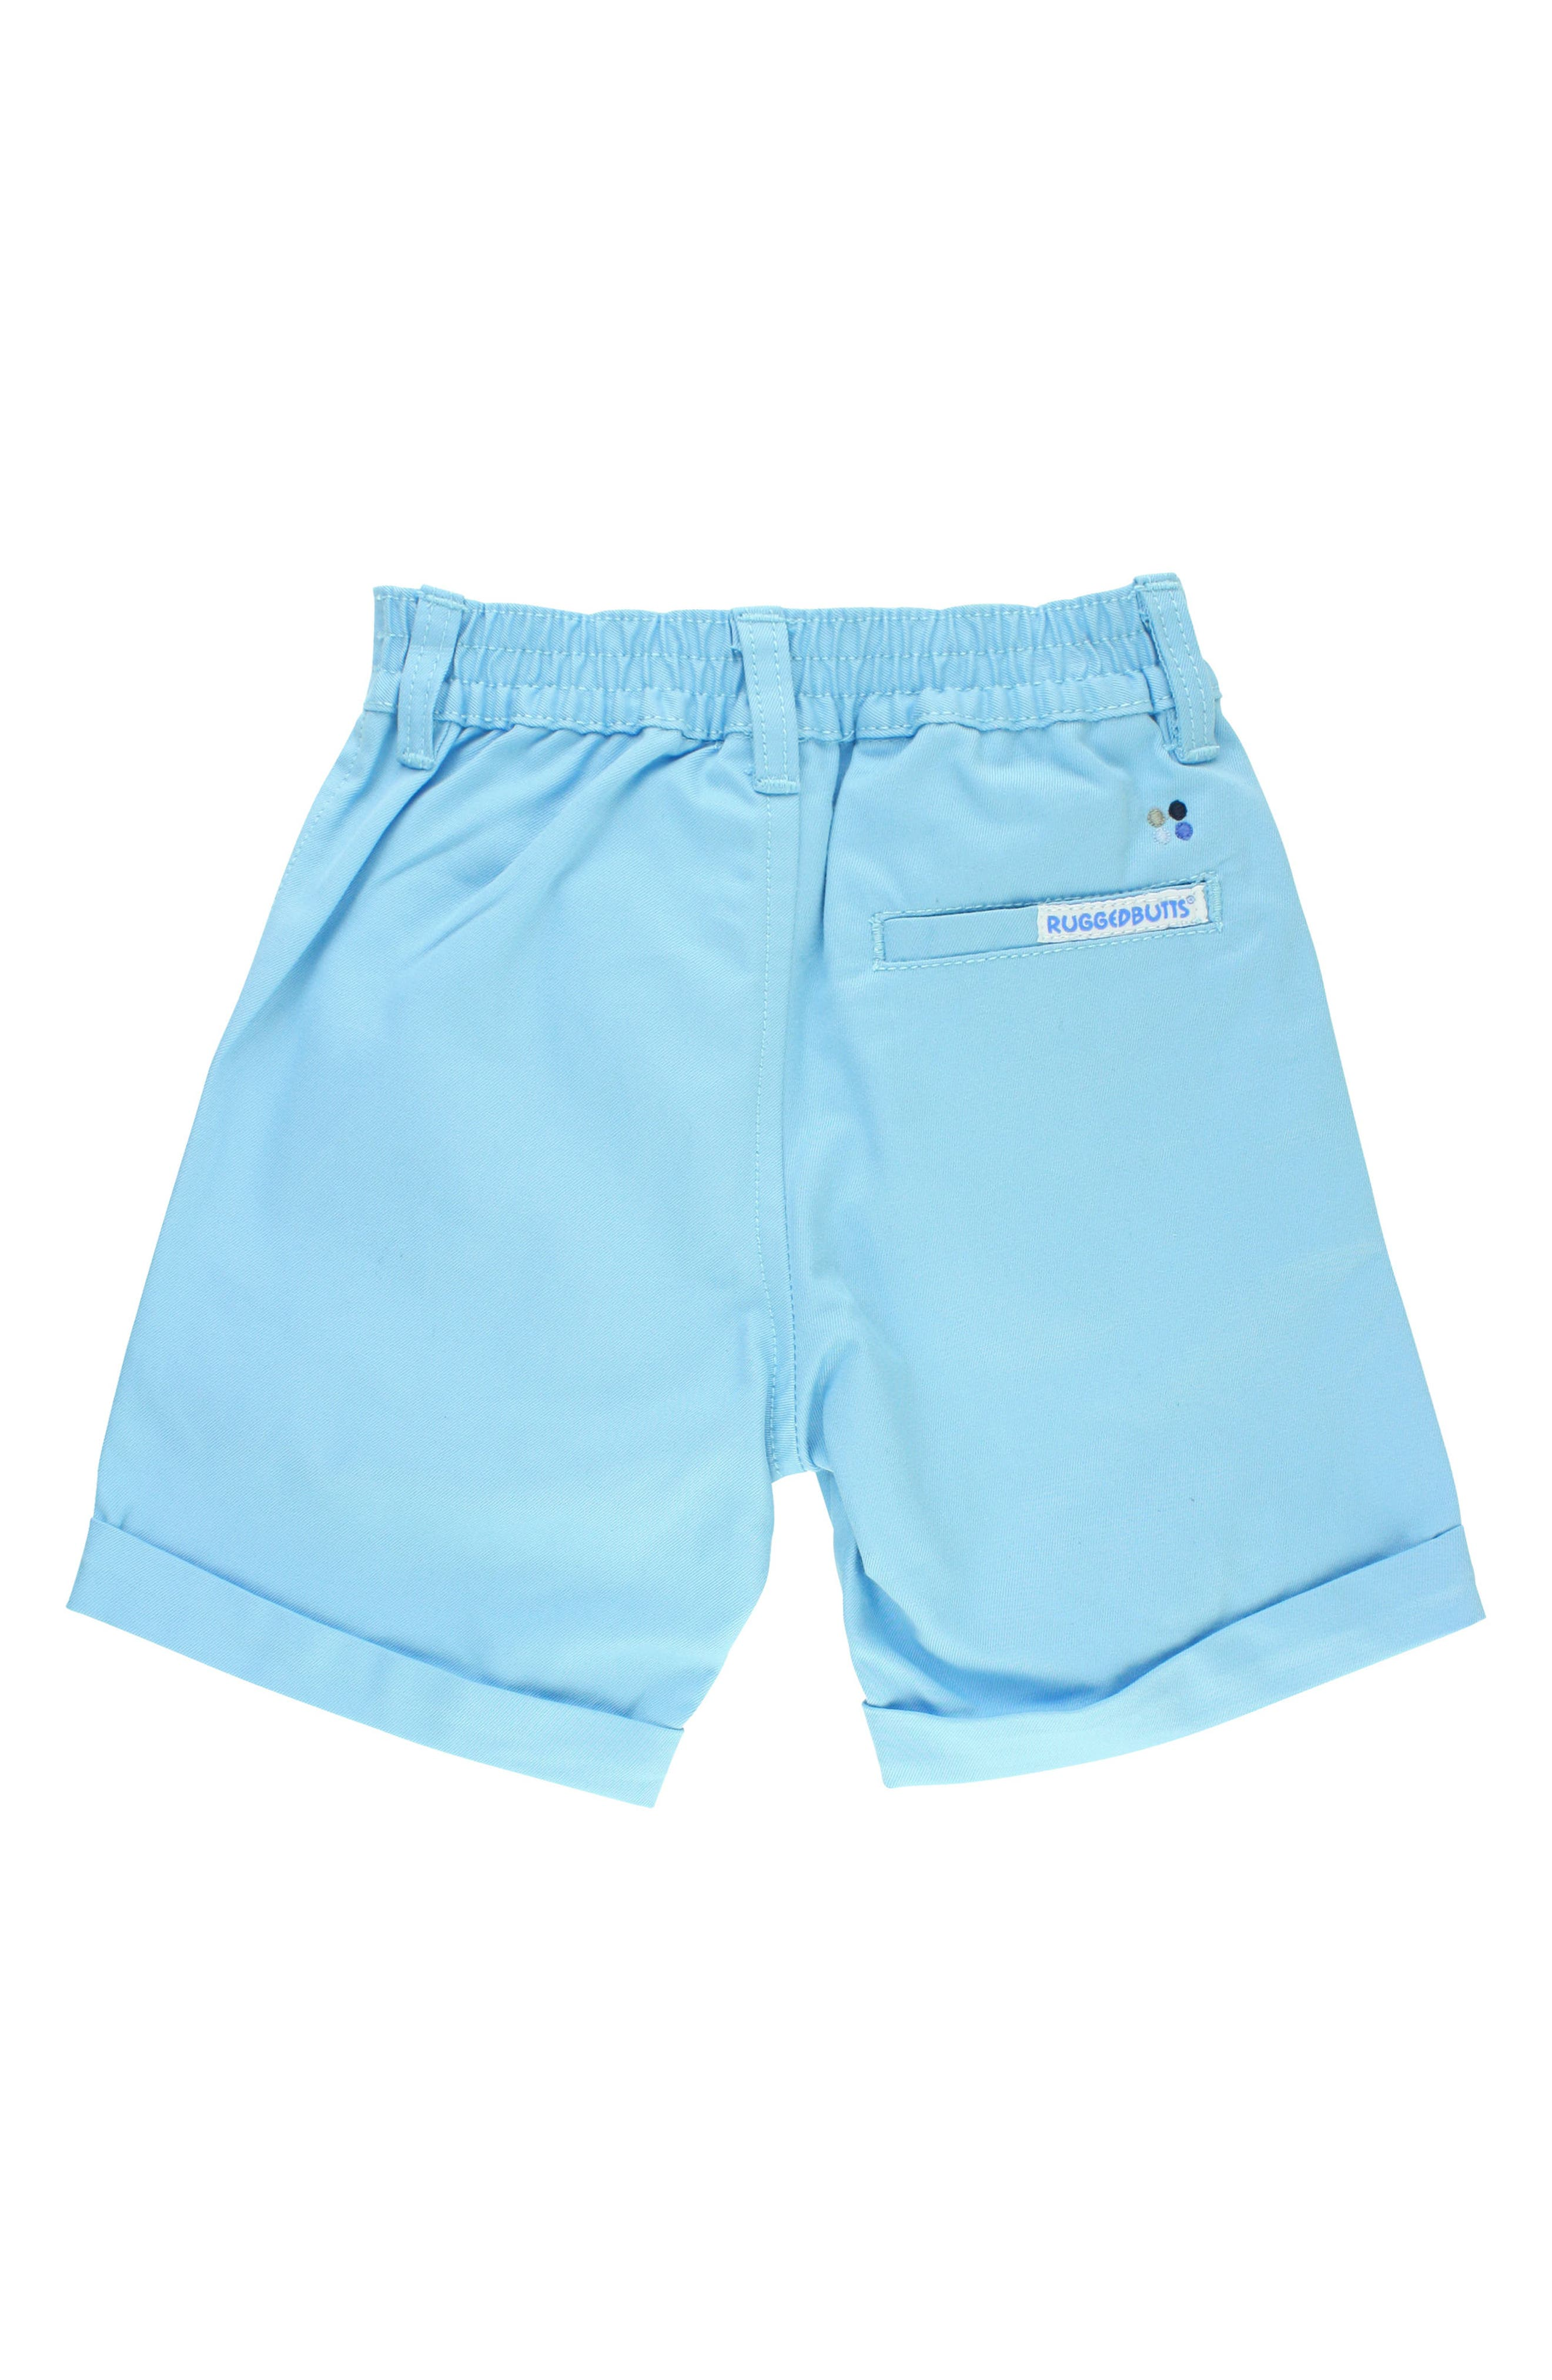 Chino Shorts,                             Alternate thumbnail 2, color,                             Blue